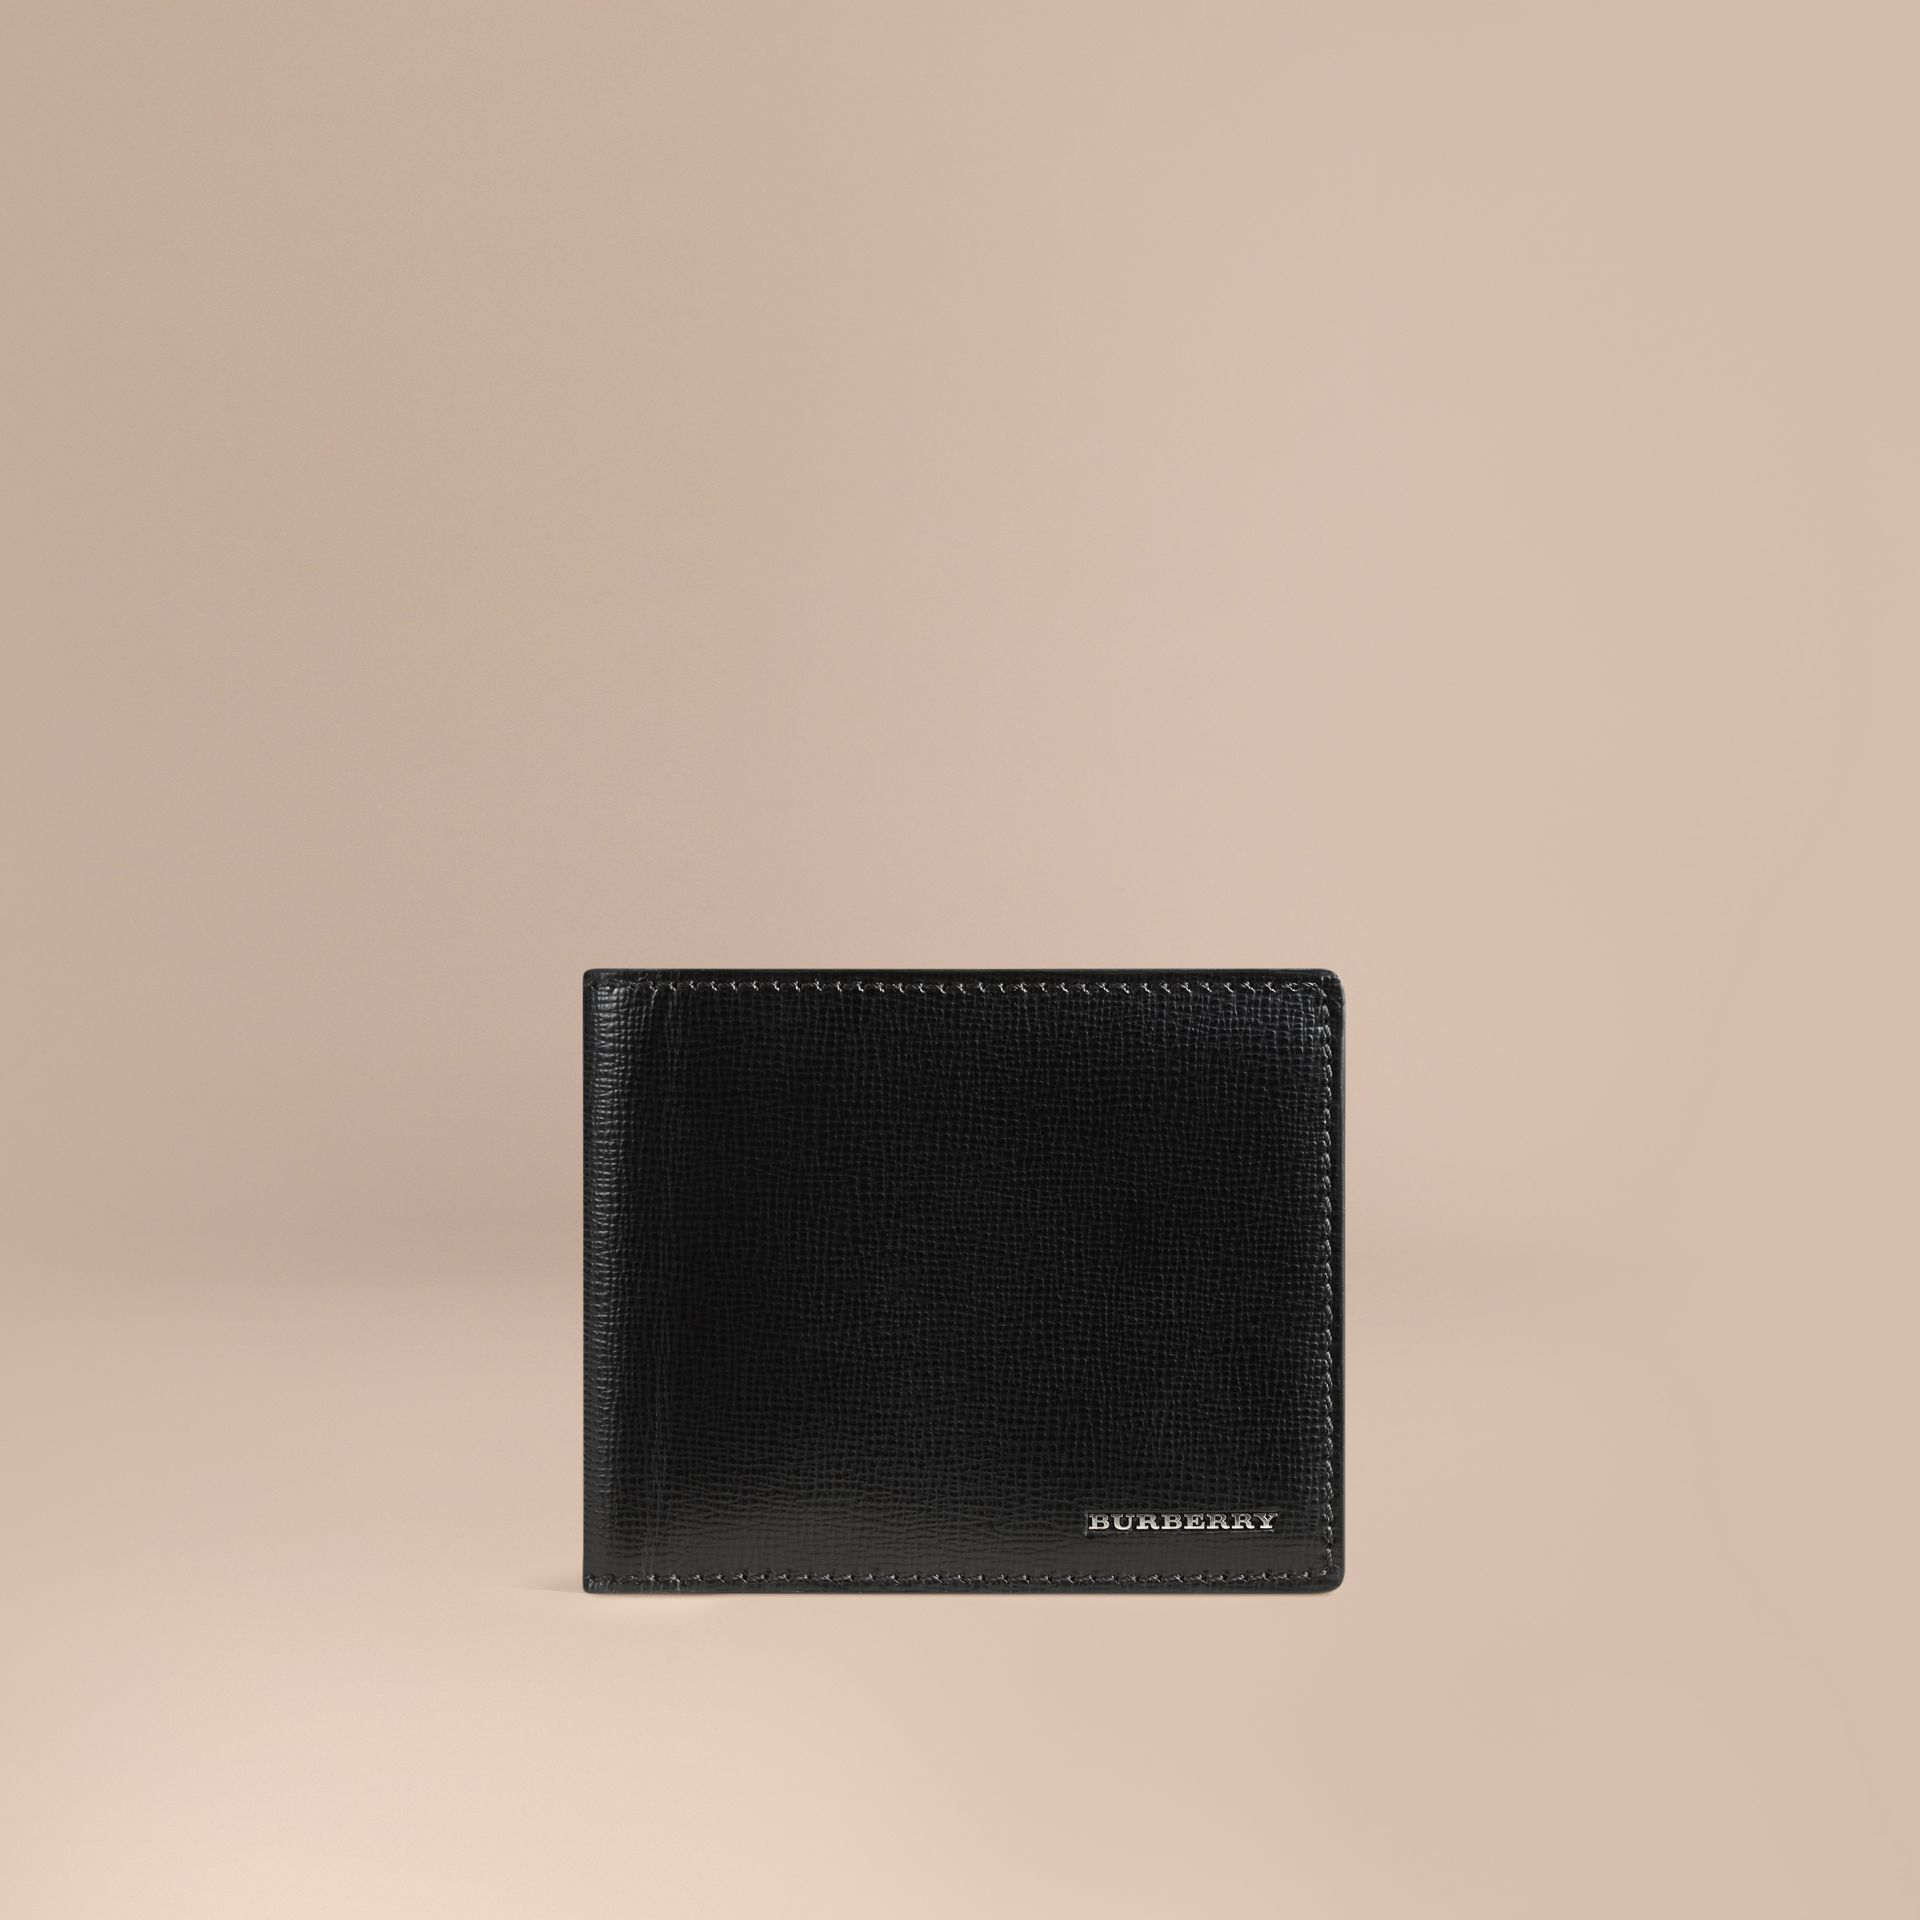 Black London Leather ID Wallet Black - gallery image 1